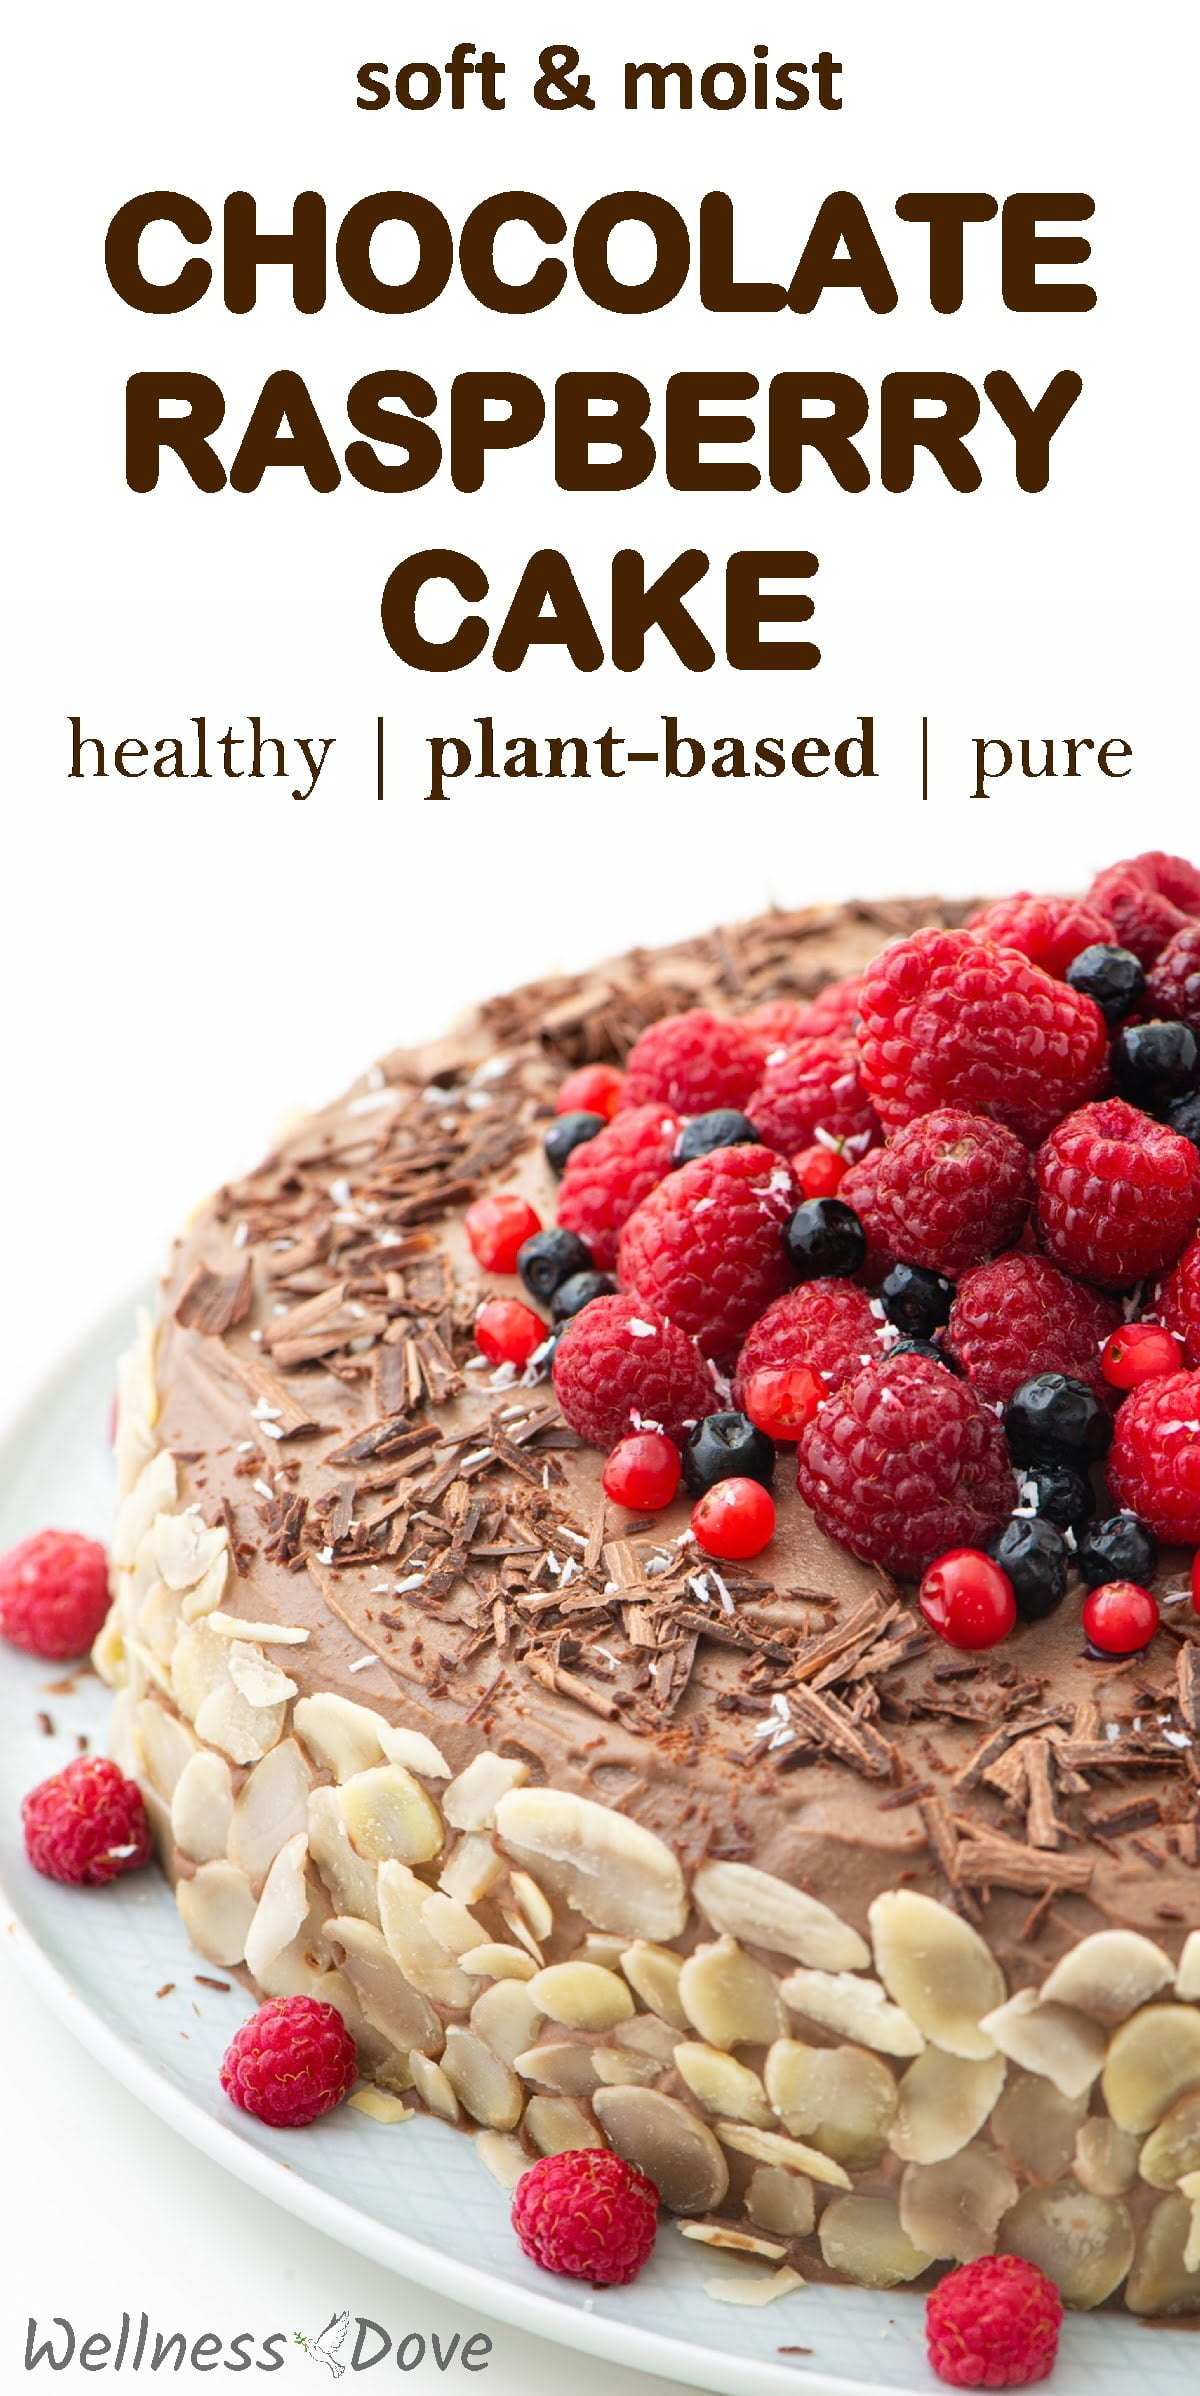 This is a dairy-free, sugar-free, oil-free chocolate cake! Super calorie-light but unbelievably tasty. With juicy raspberries for a touch of freshness and aroma. For those special occasions when you want to prepare something sweet and delicious yet healthy as well.